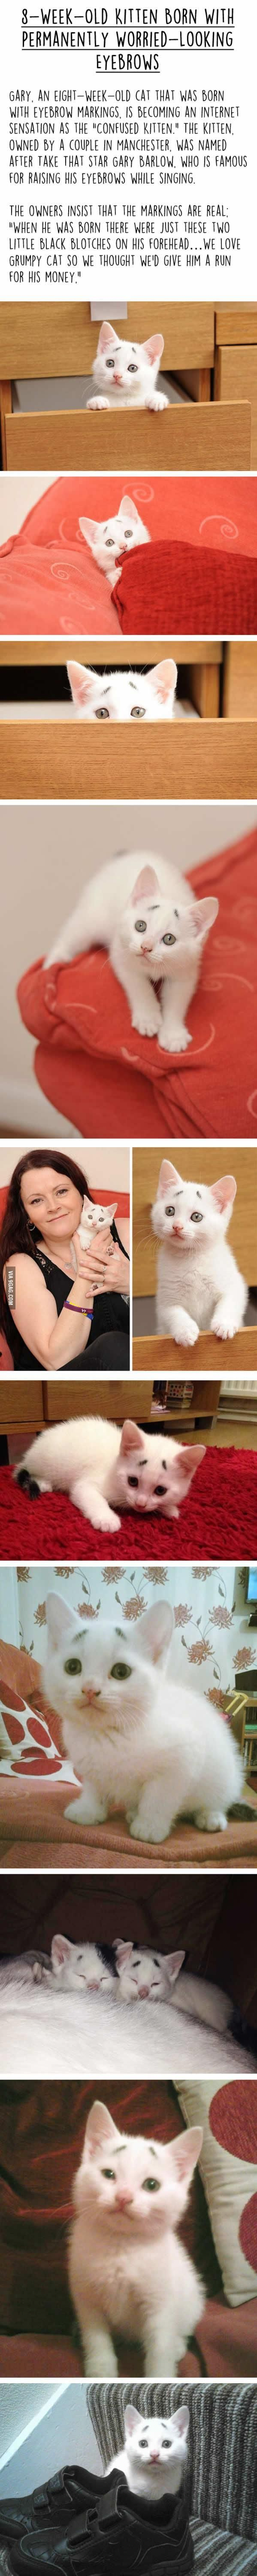 Best Lulu Le Chat Triste Images On Pinterest Tabby Cats - Kitten born with permanently worried looking eyebrows will melt your heart